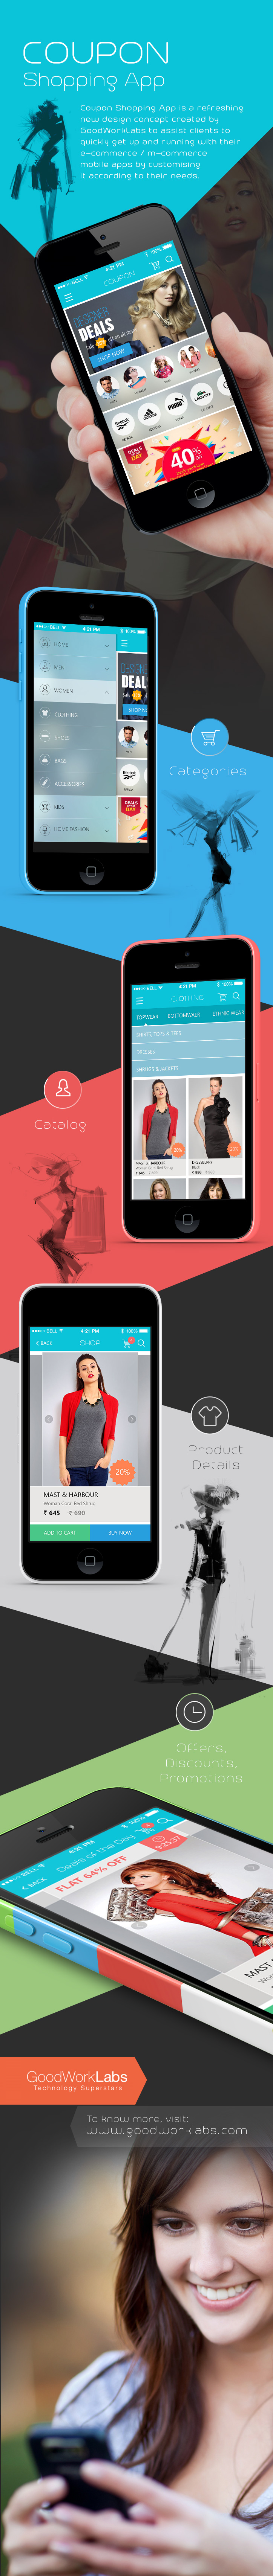 Shopping-ecommerce-mobile-app-goodworklabs